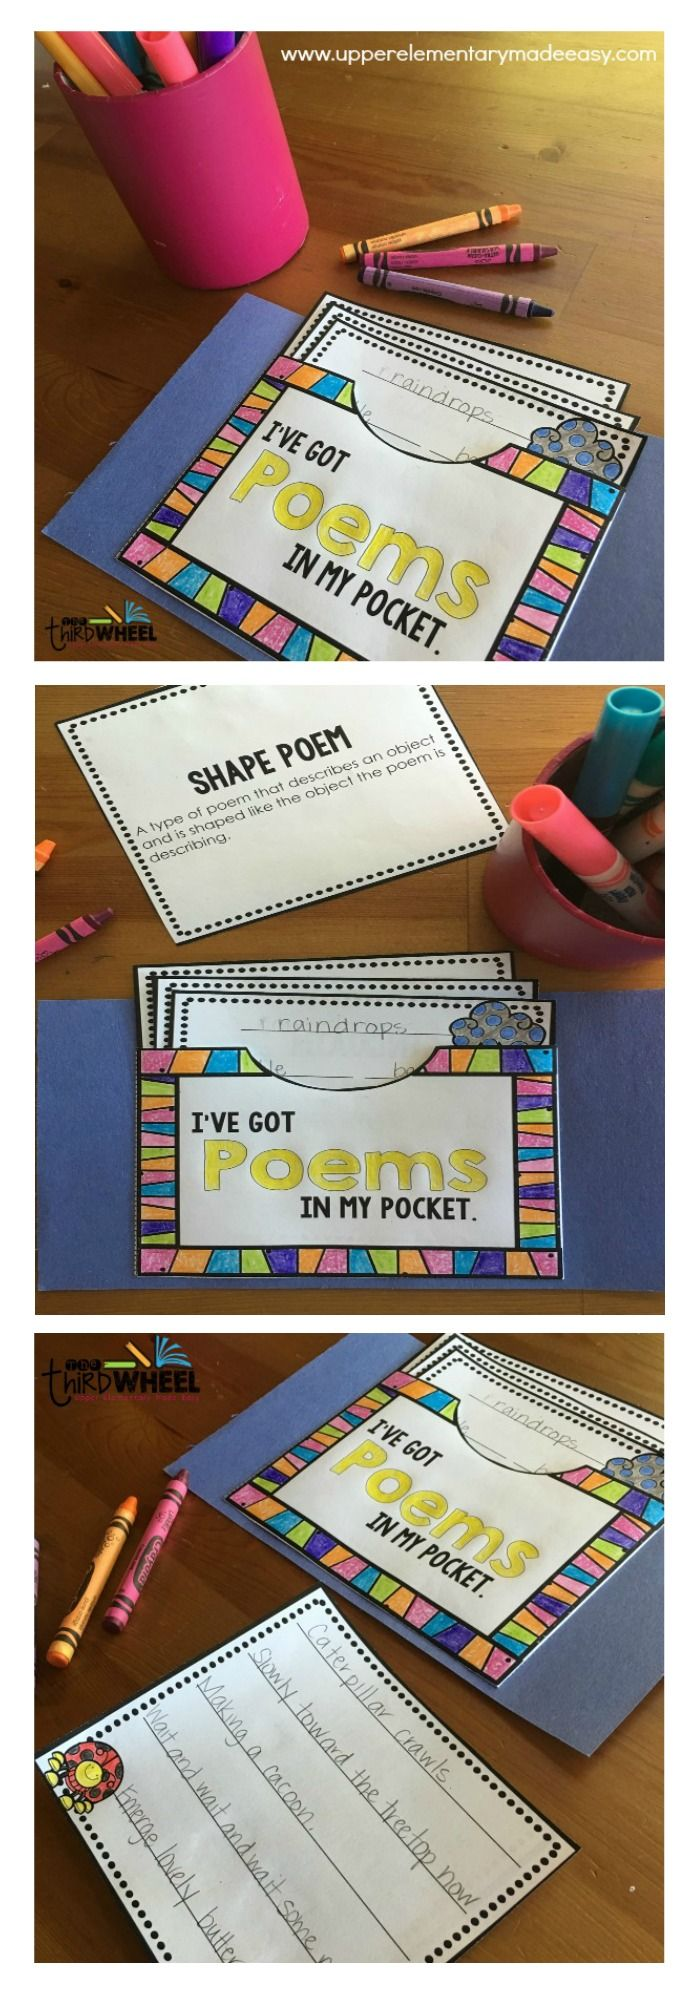 This spring poetry pocket is perfect for our poetry month celebration. What a great interactive bulletin board idea for our April bulletin boards!